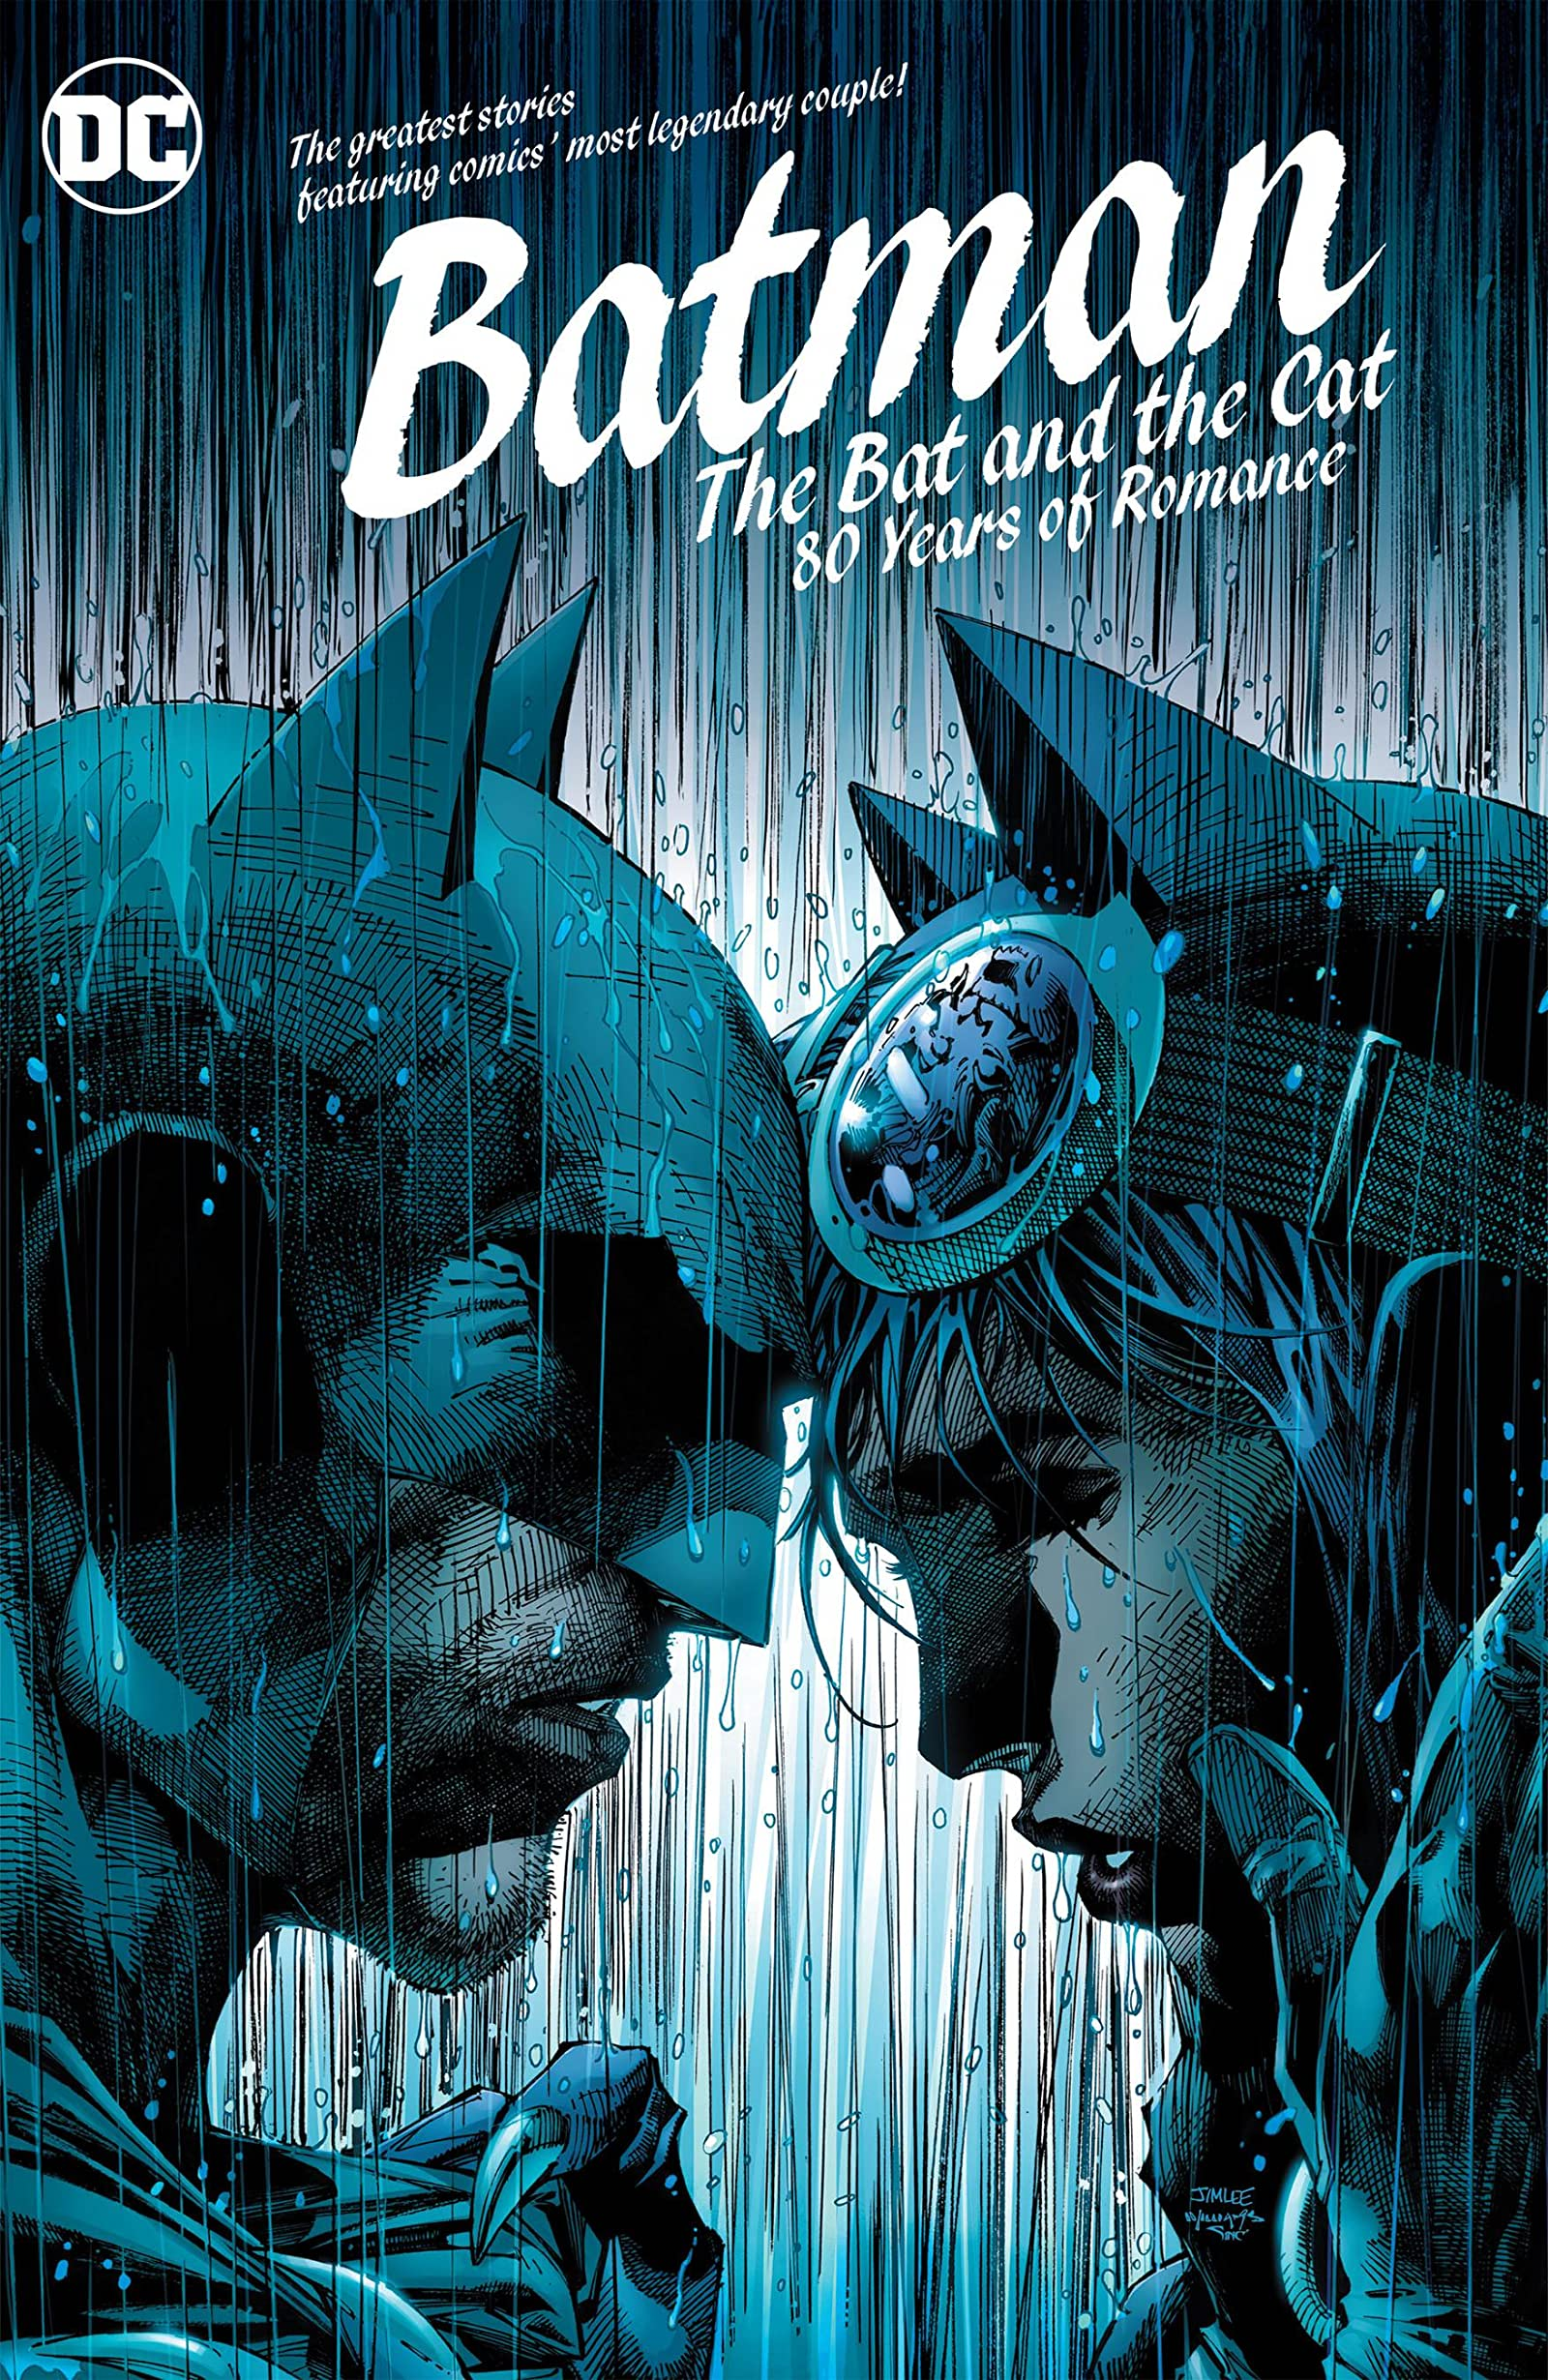 Batman: The Bat and the Cat: 80 Years of Romance (Collected)